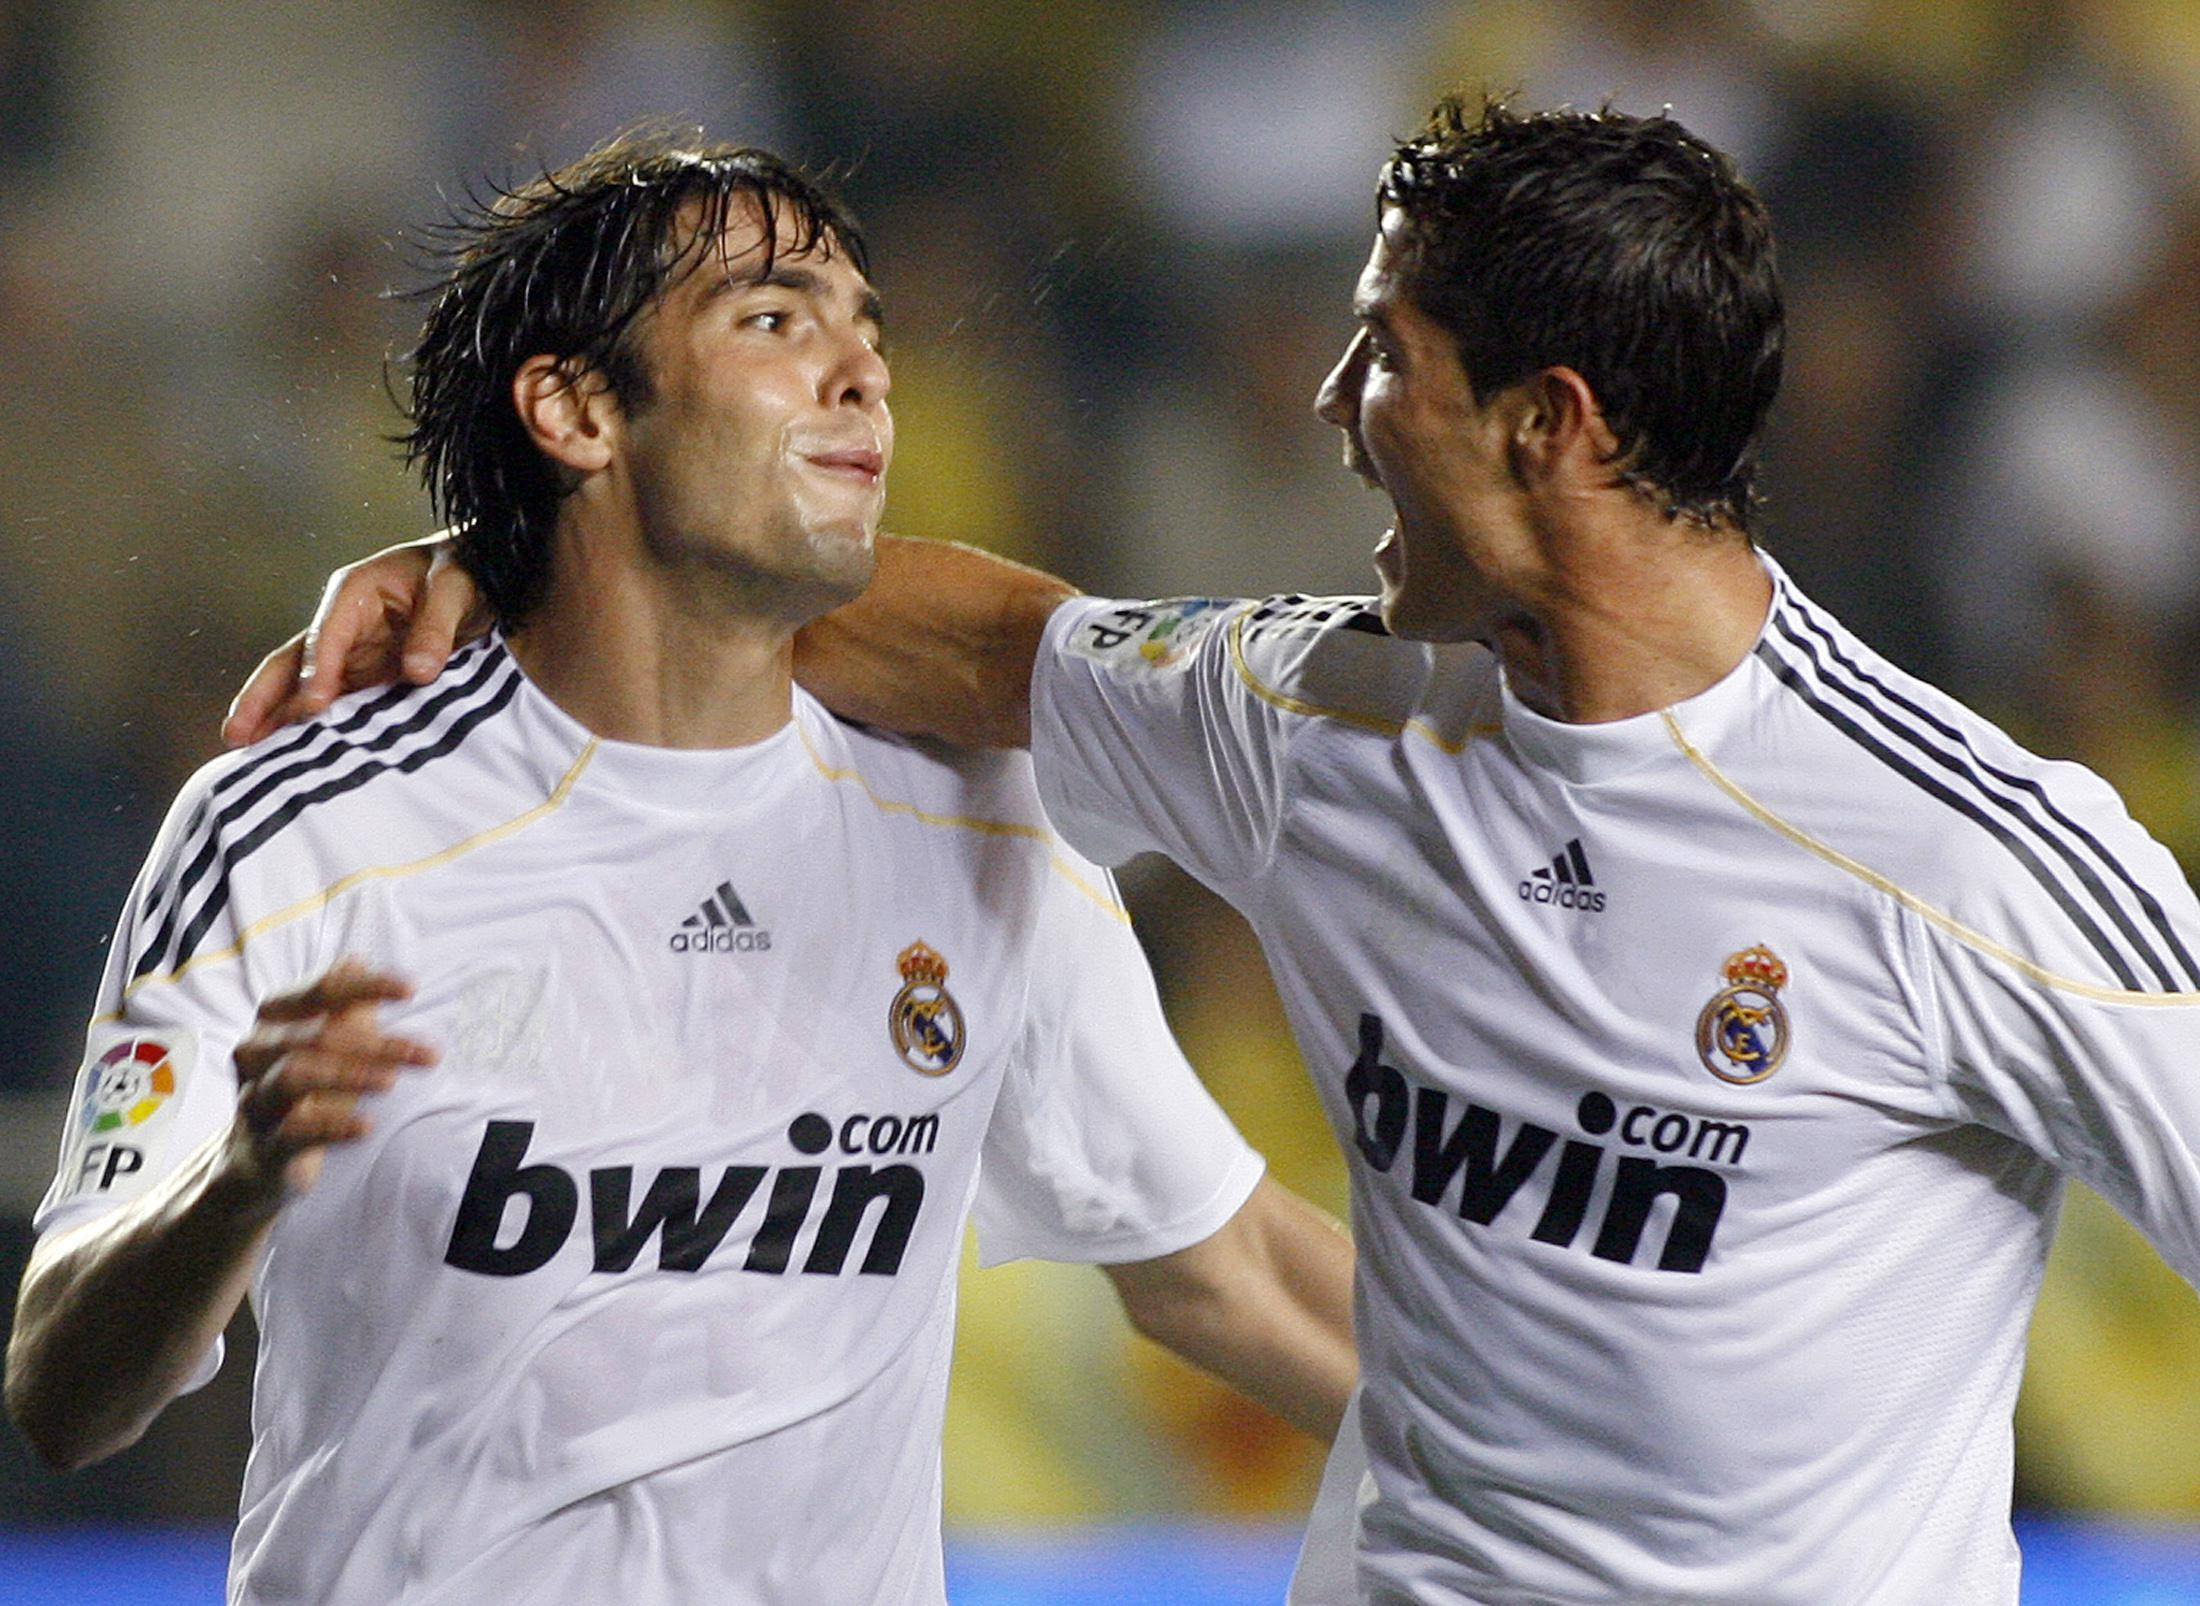 Kaka and Ronaldo were team-mates at Real Madrid once upon a time